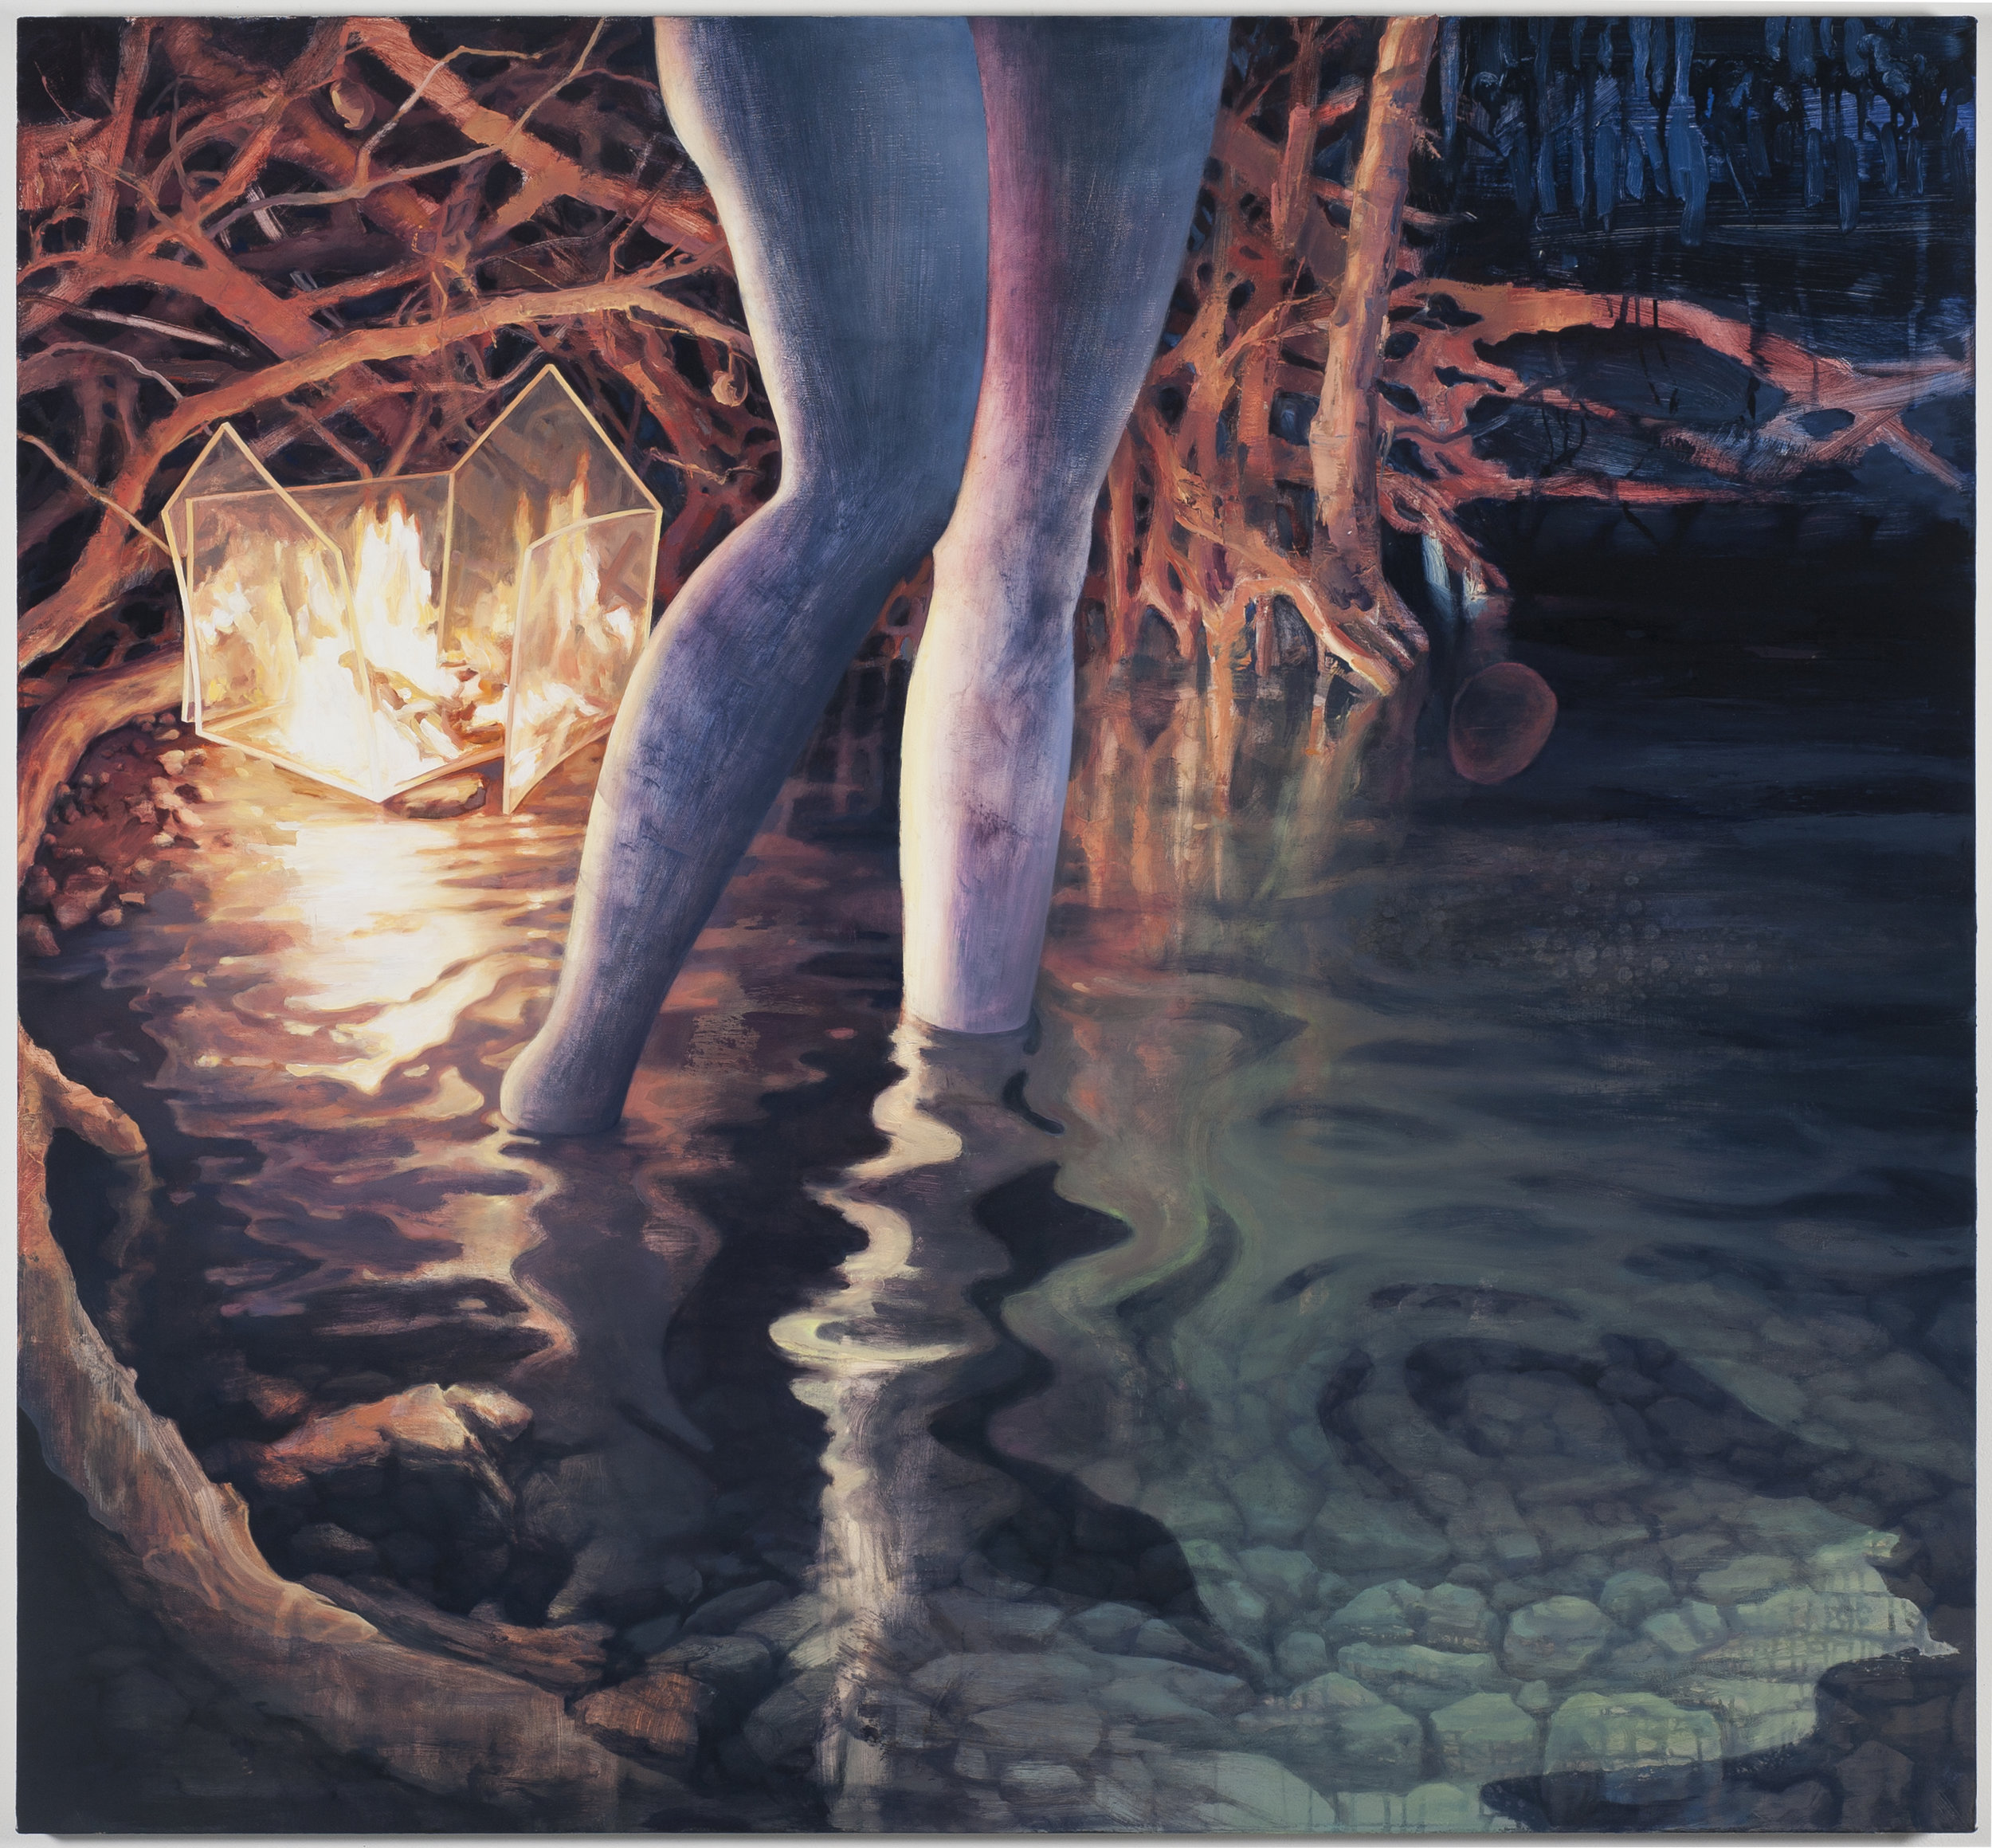 Drink Me, 2011, Oil on canvas, 52x56inches